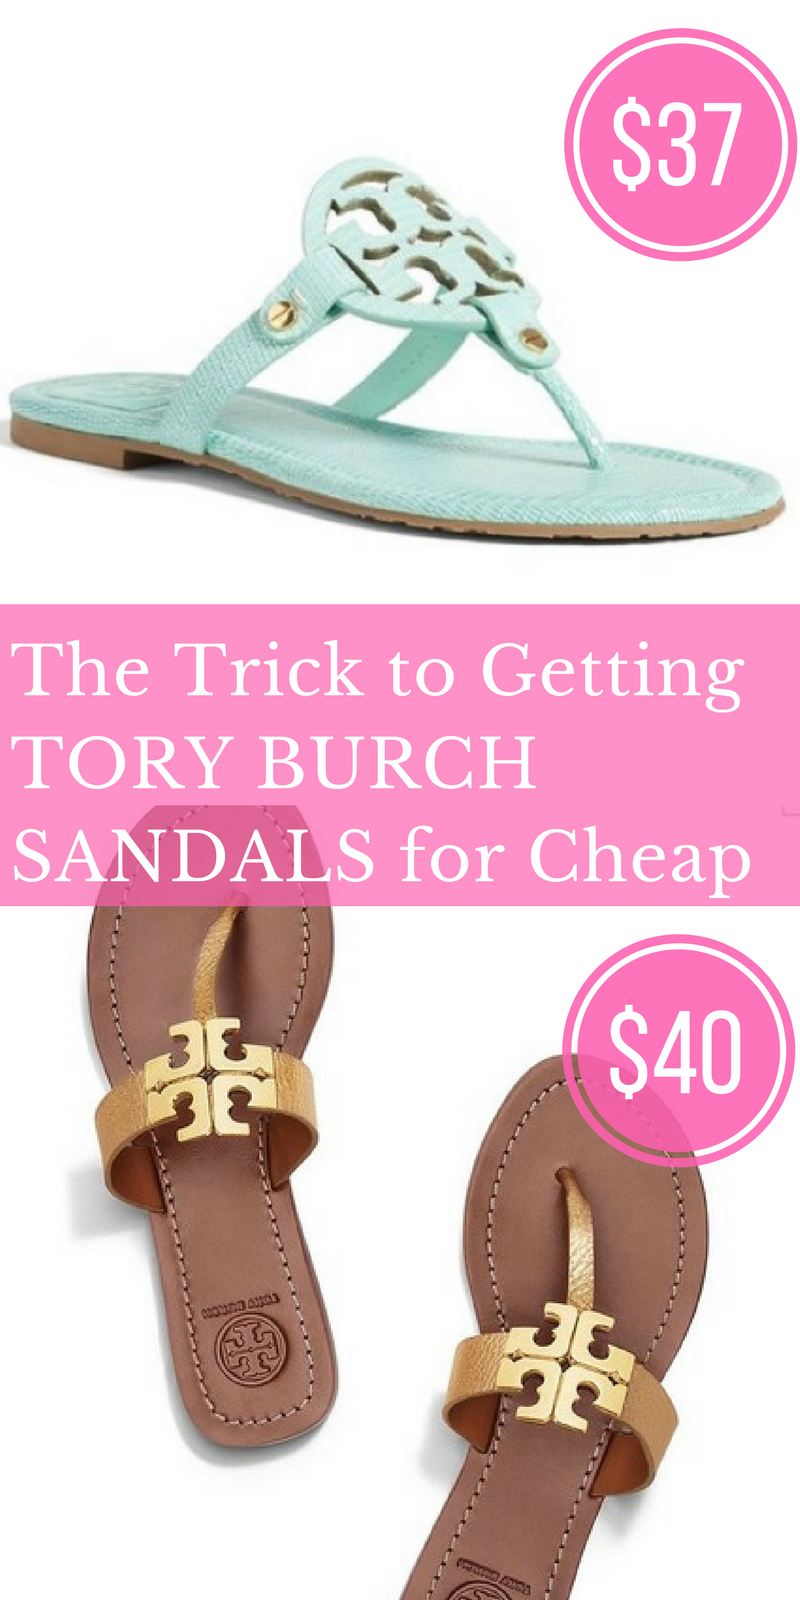 29a4b50e932a2b List an Item or Make an Offer! Buy and Sell Tory Burch Sandals at Poshmark!  Install for free now! Shipping is also fast and easy for sellers and buyers!